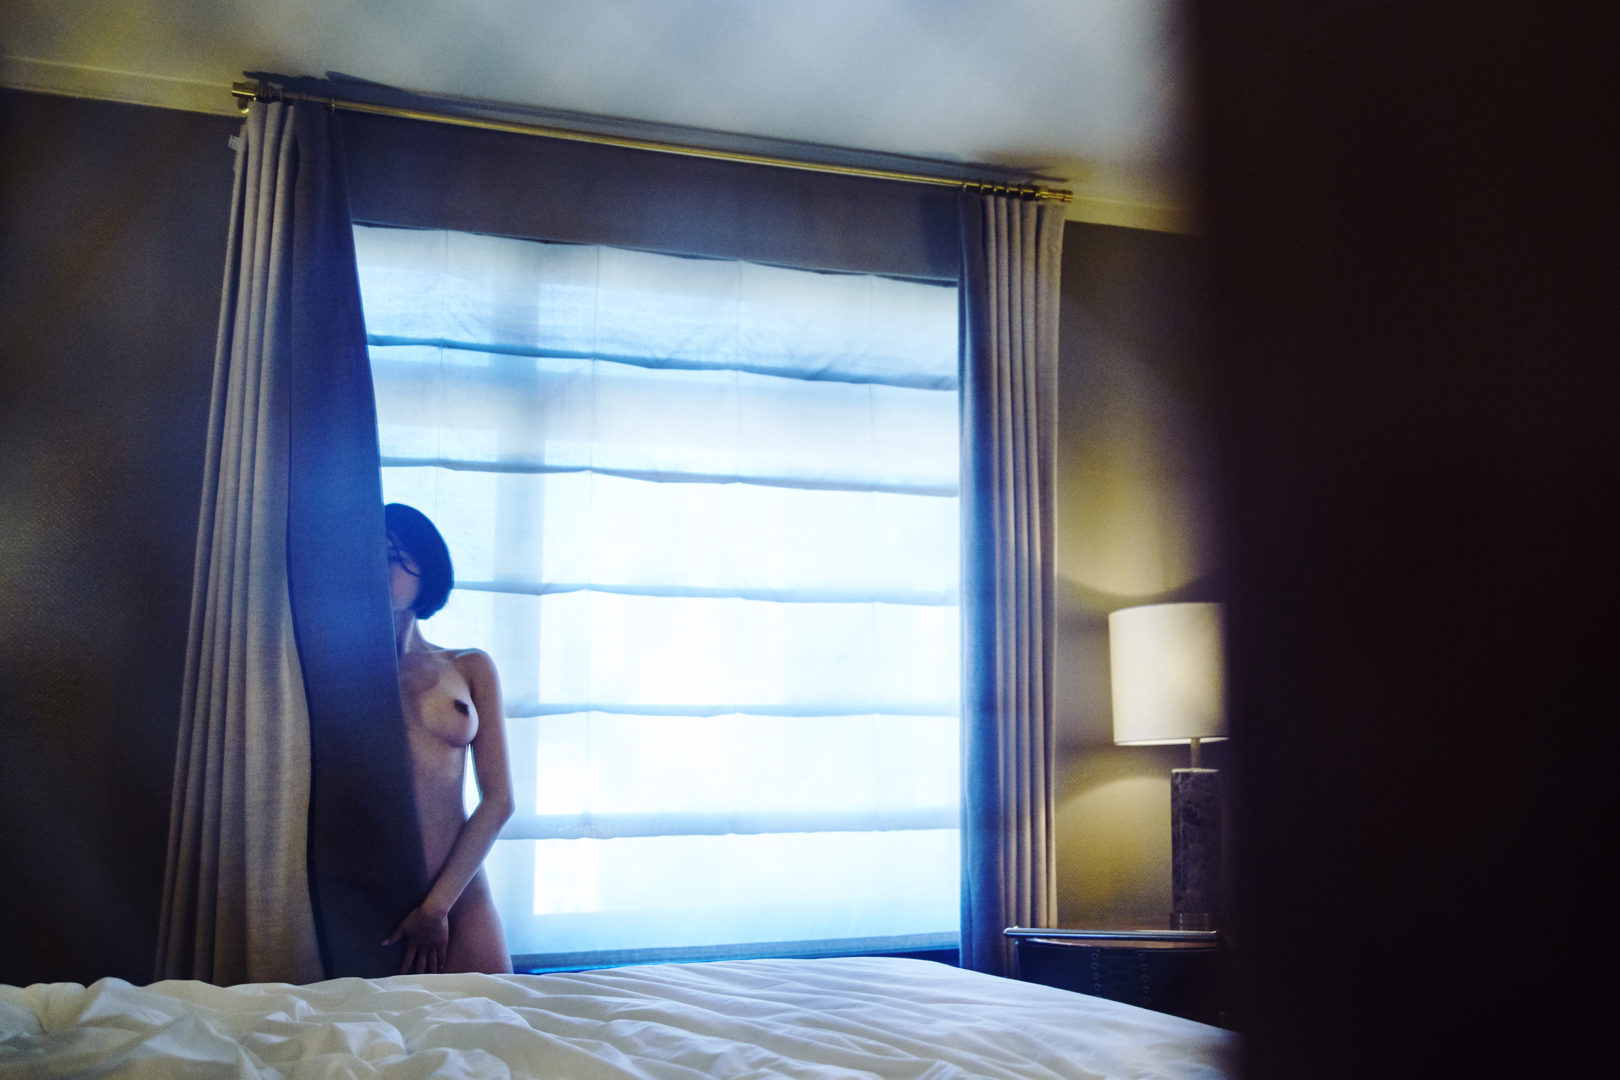 girl behind curtain in hotel room